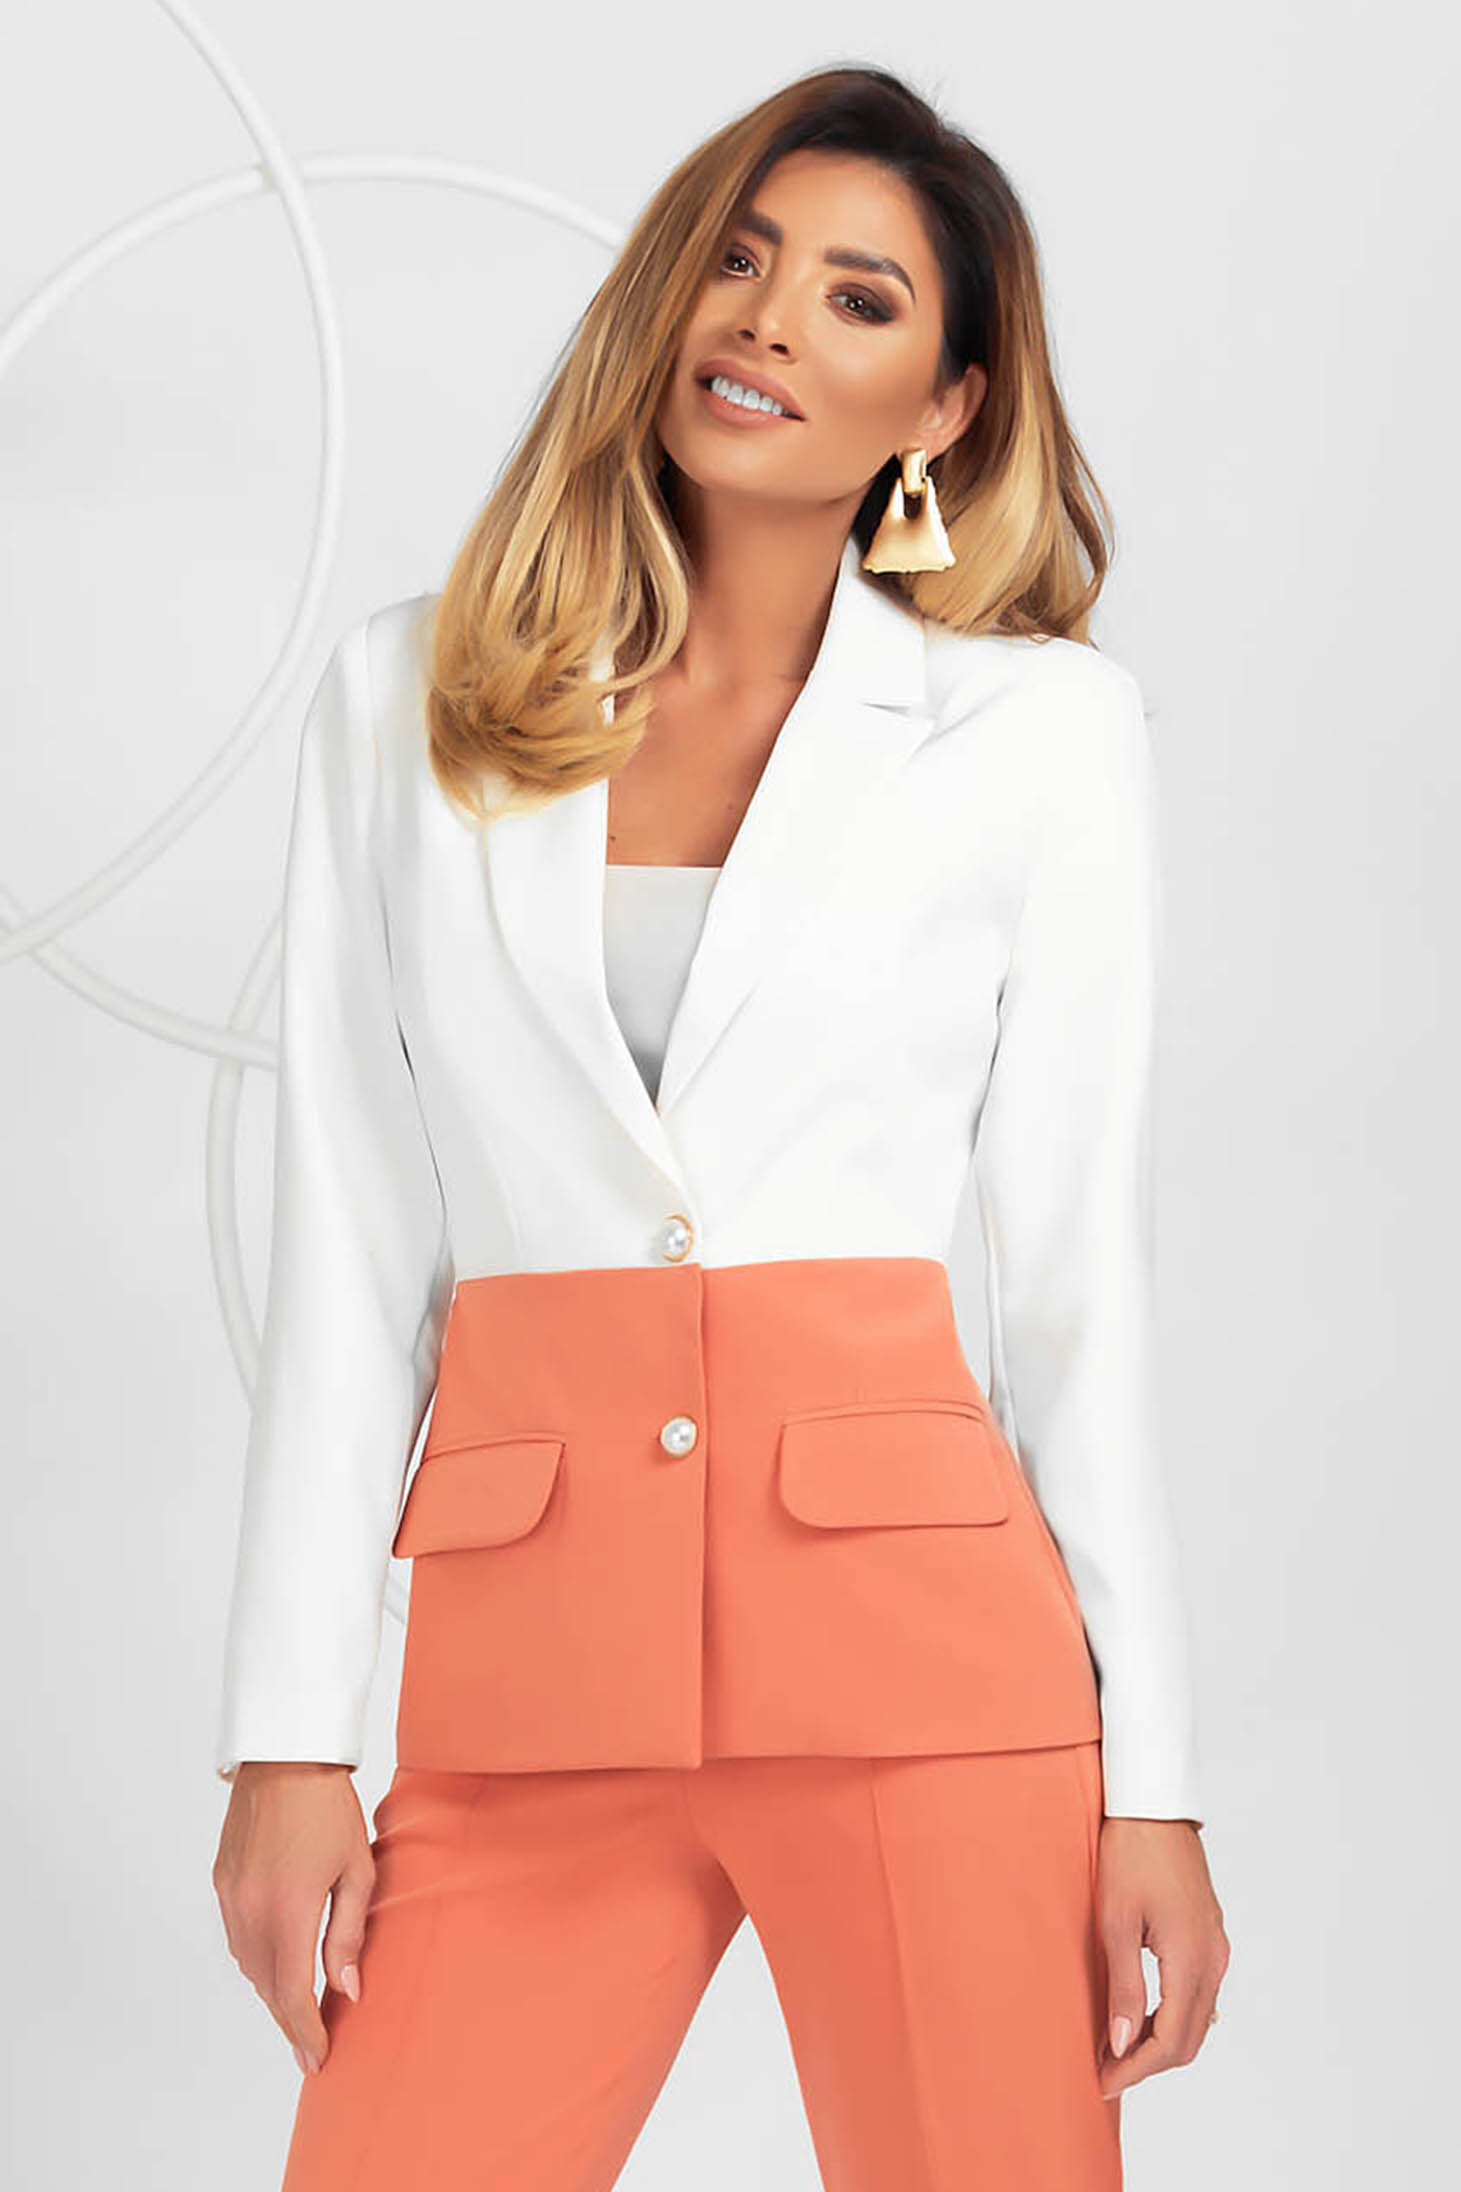 Jacket coral office slightly elastic fabric with padded shoulders tented